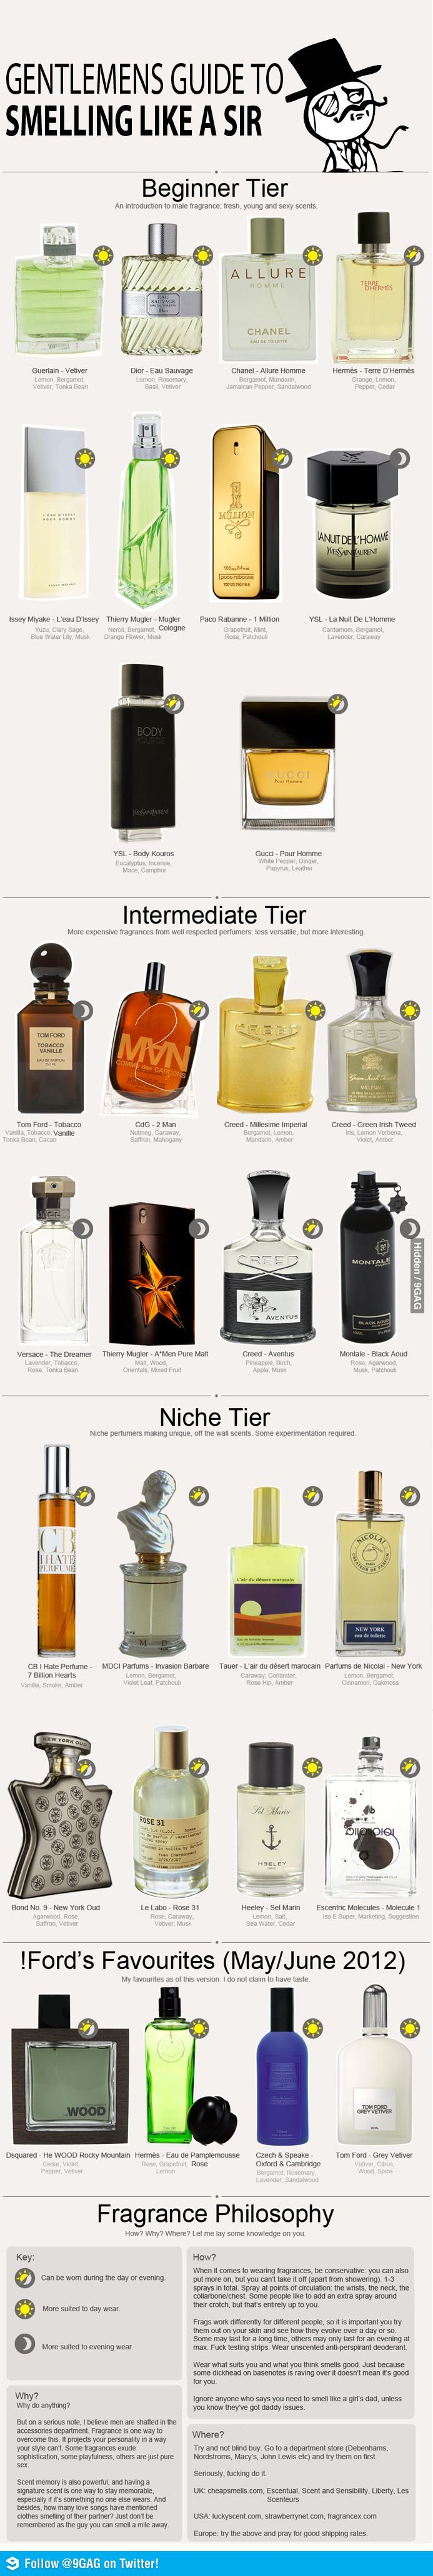 Guide for men, smelling like a sir! | cynthia reccord